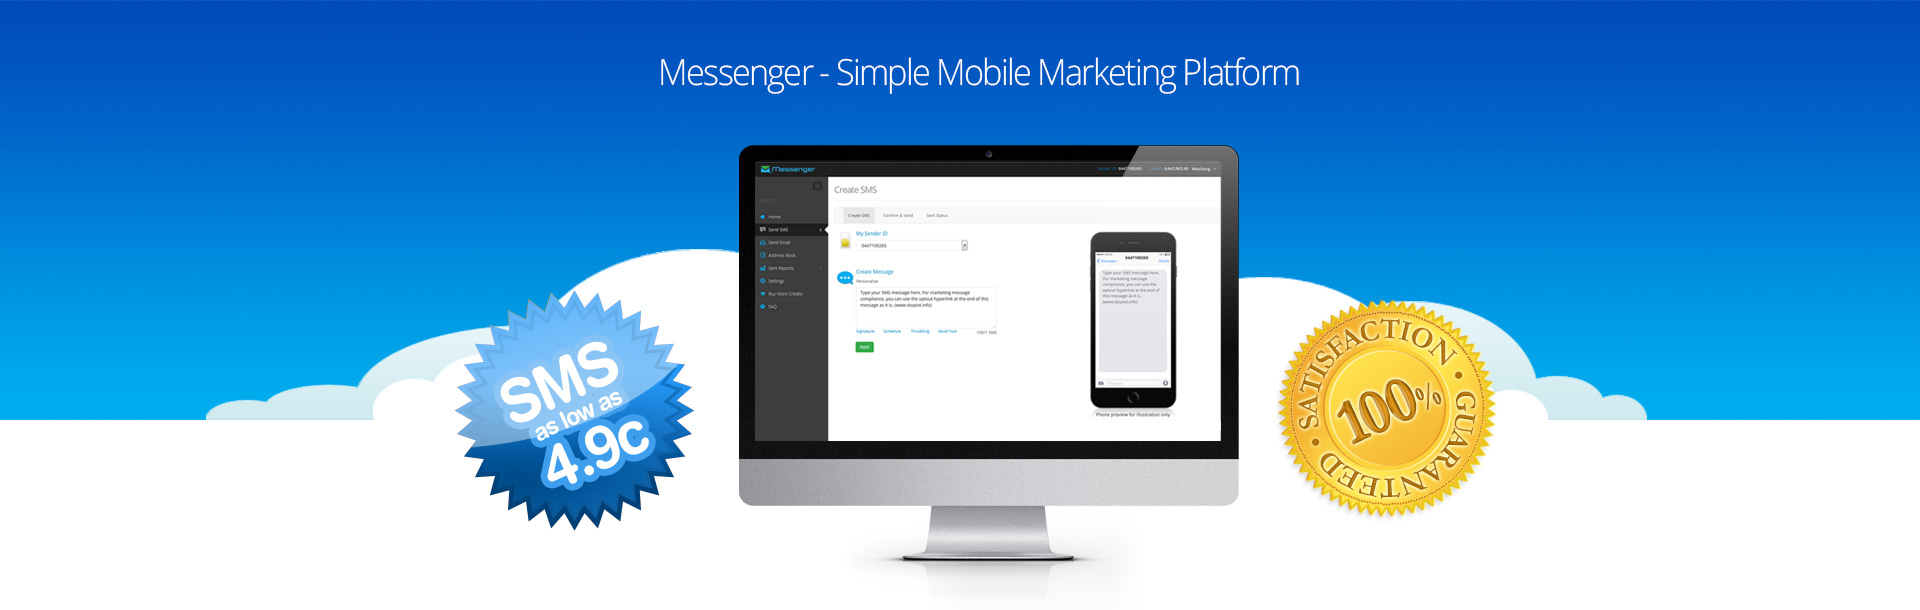 Messenger - Australian Mobile Marketing Platform